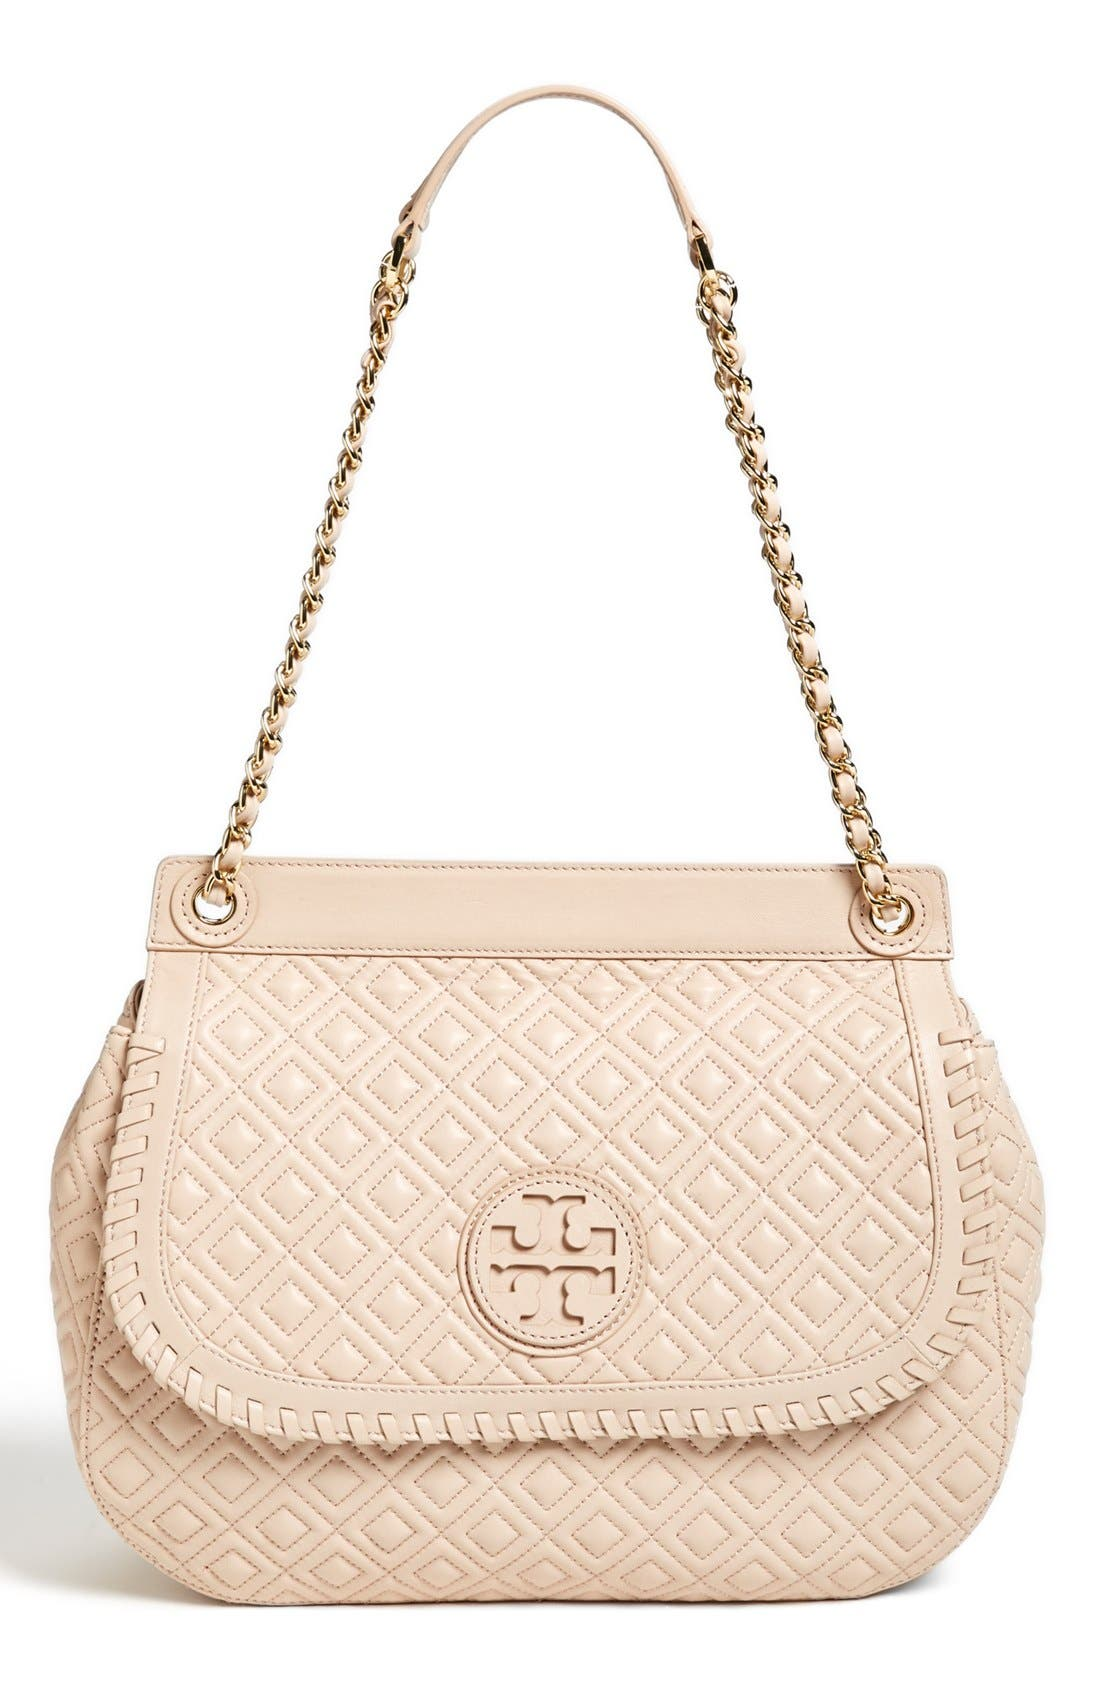 Main Image - Tory Burch 'Marion' Quilted Convertible Shoulder Bag